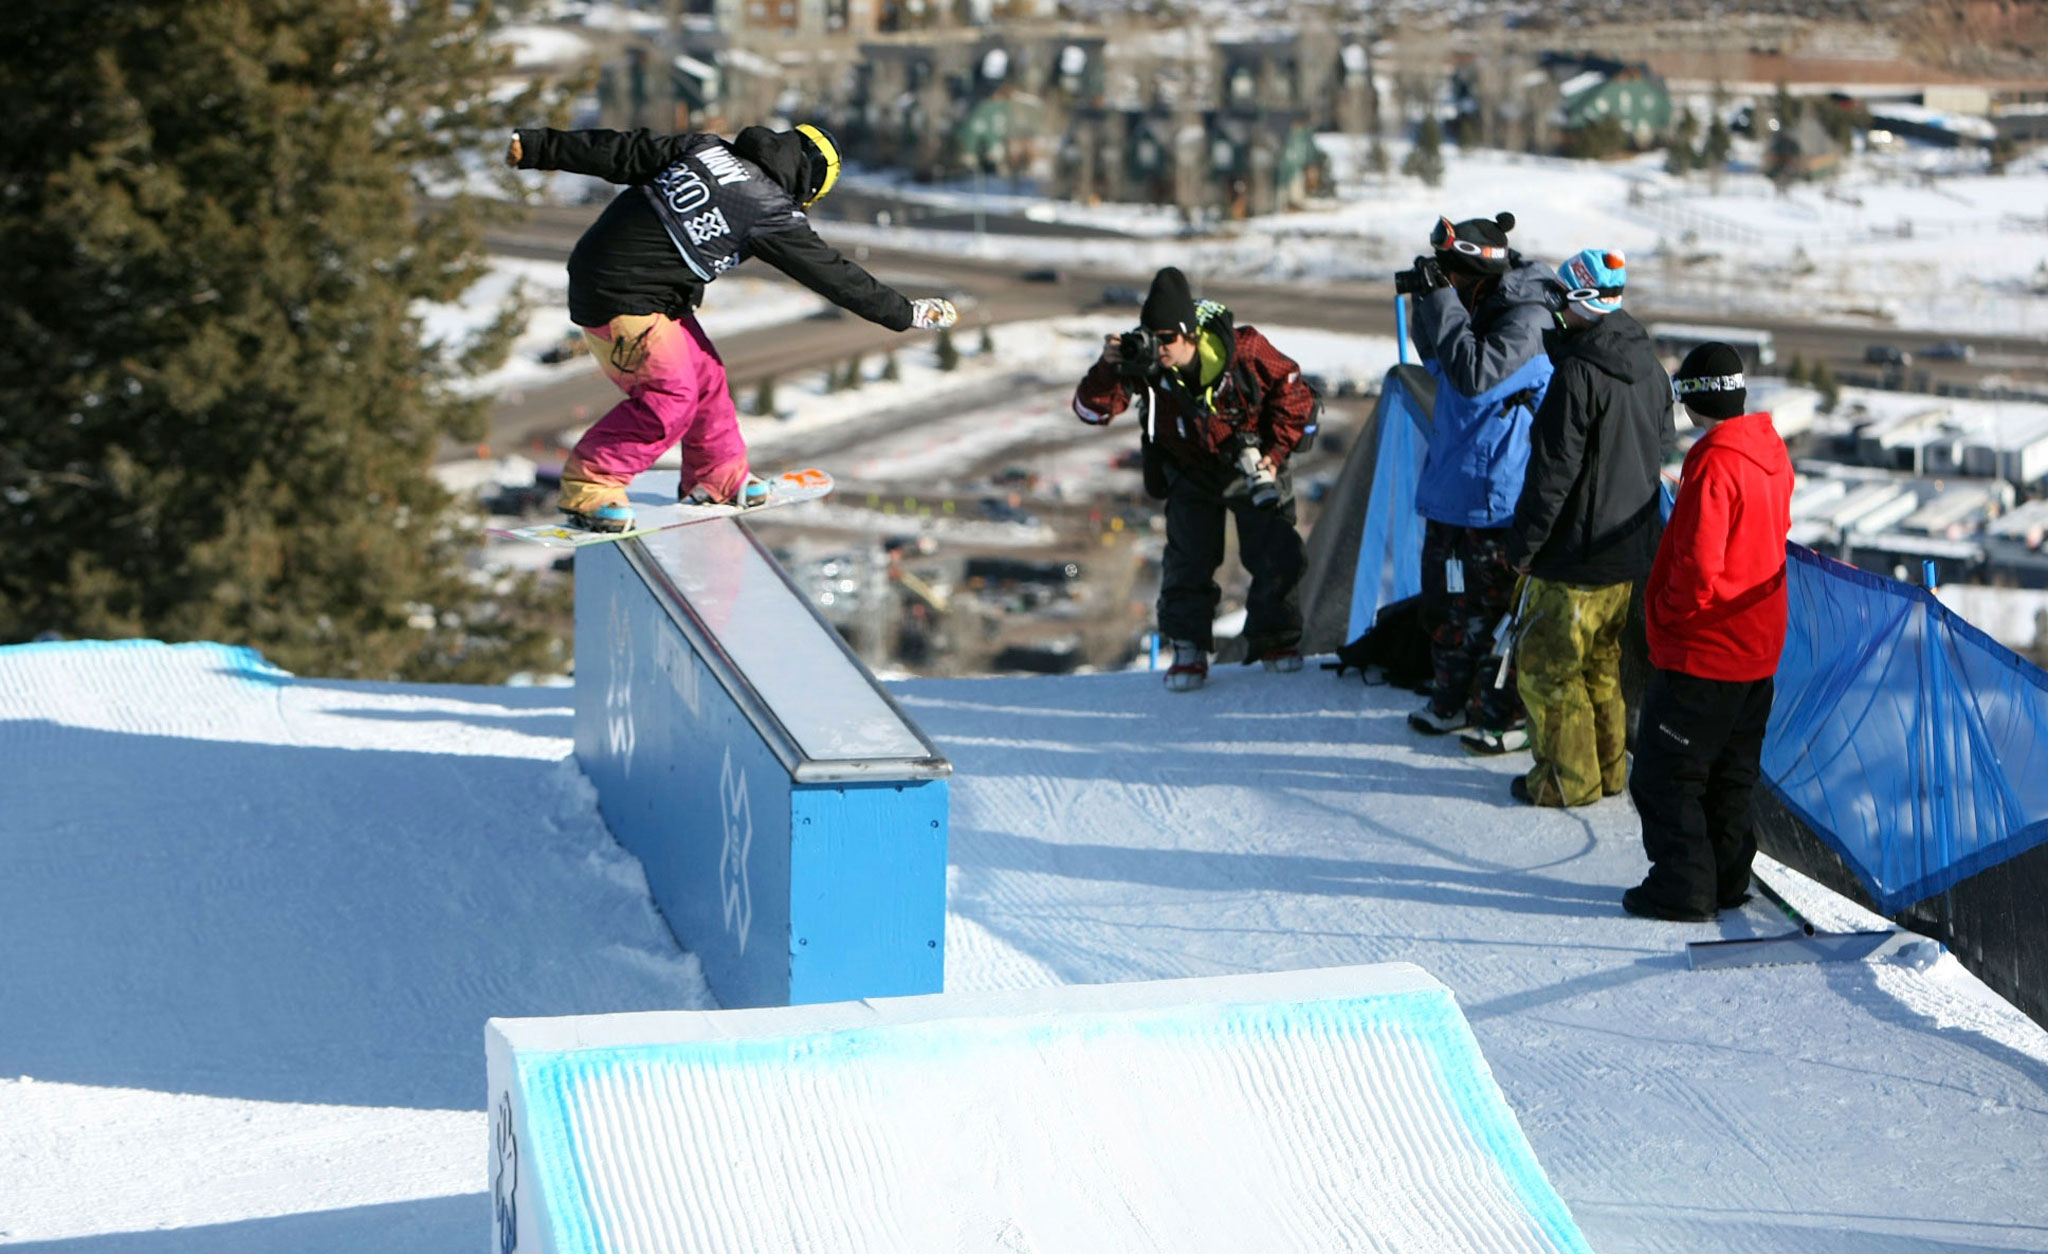 Hana Beaman, a three-time X Games Snowboard Slopestyle silver medalist, has returned to competition for a chance to qualify for the 2014 Sochi Olympics.